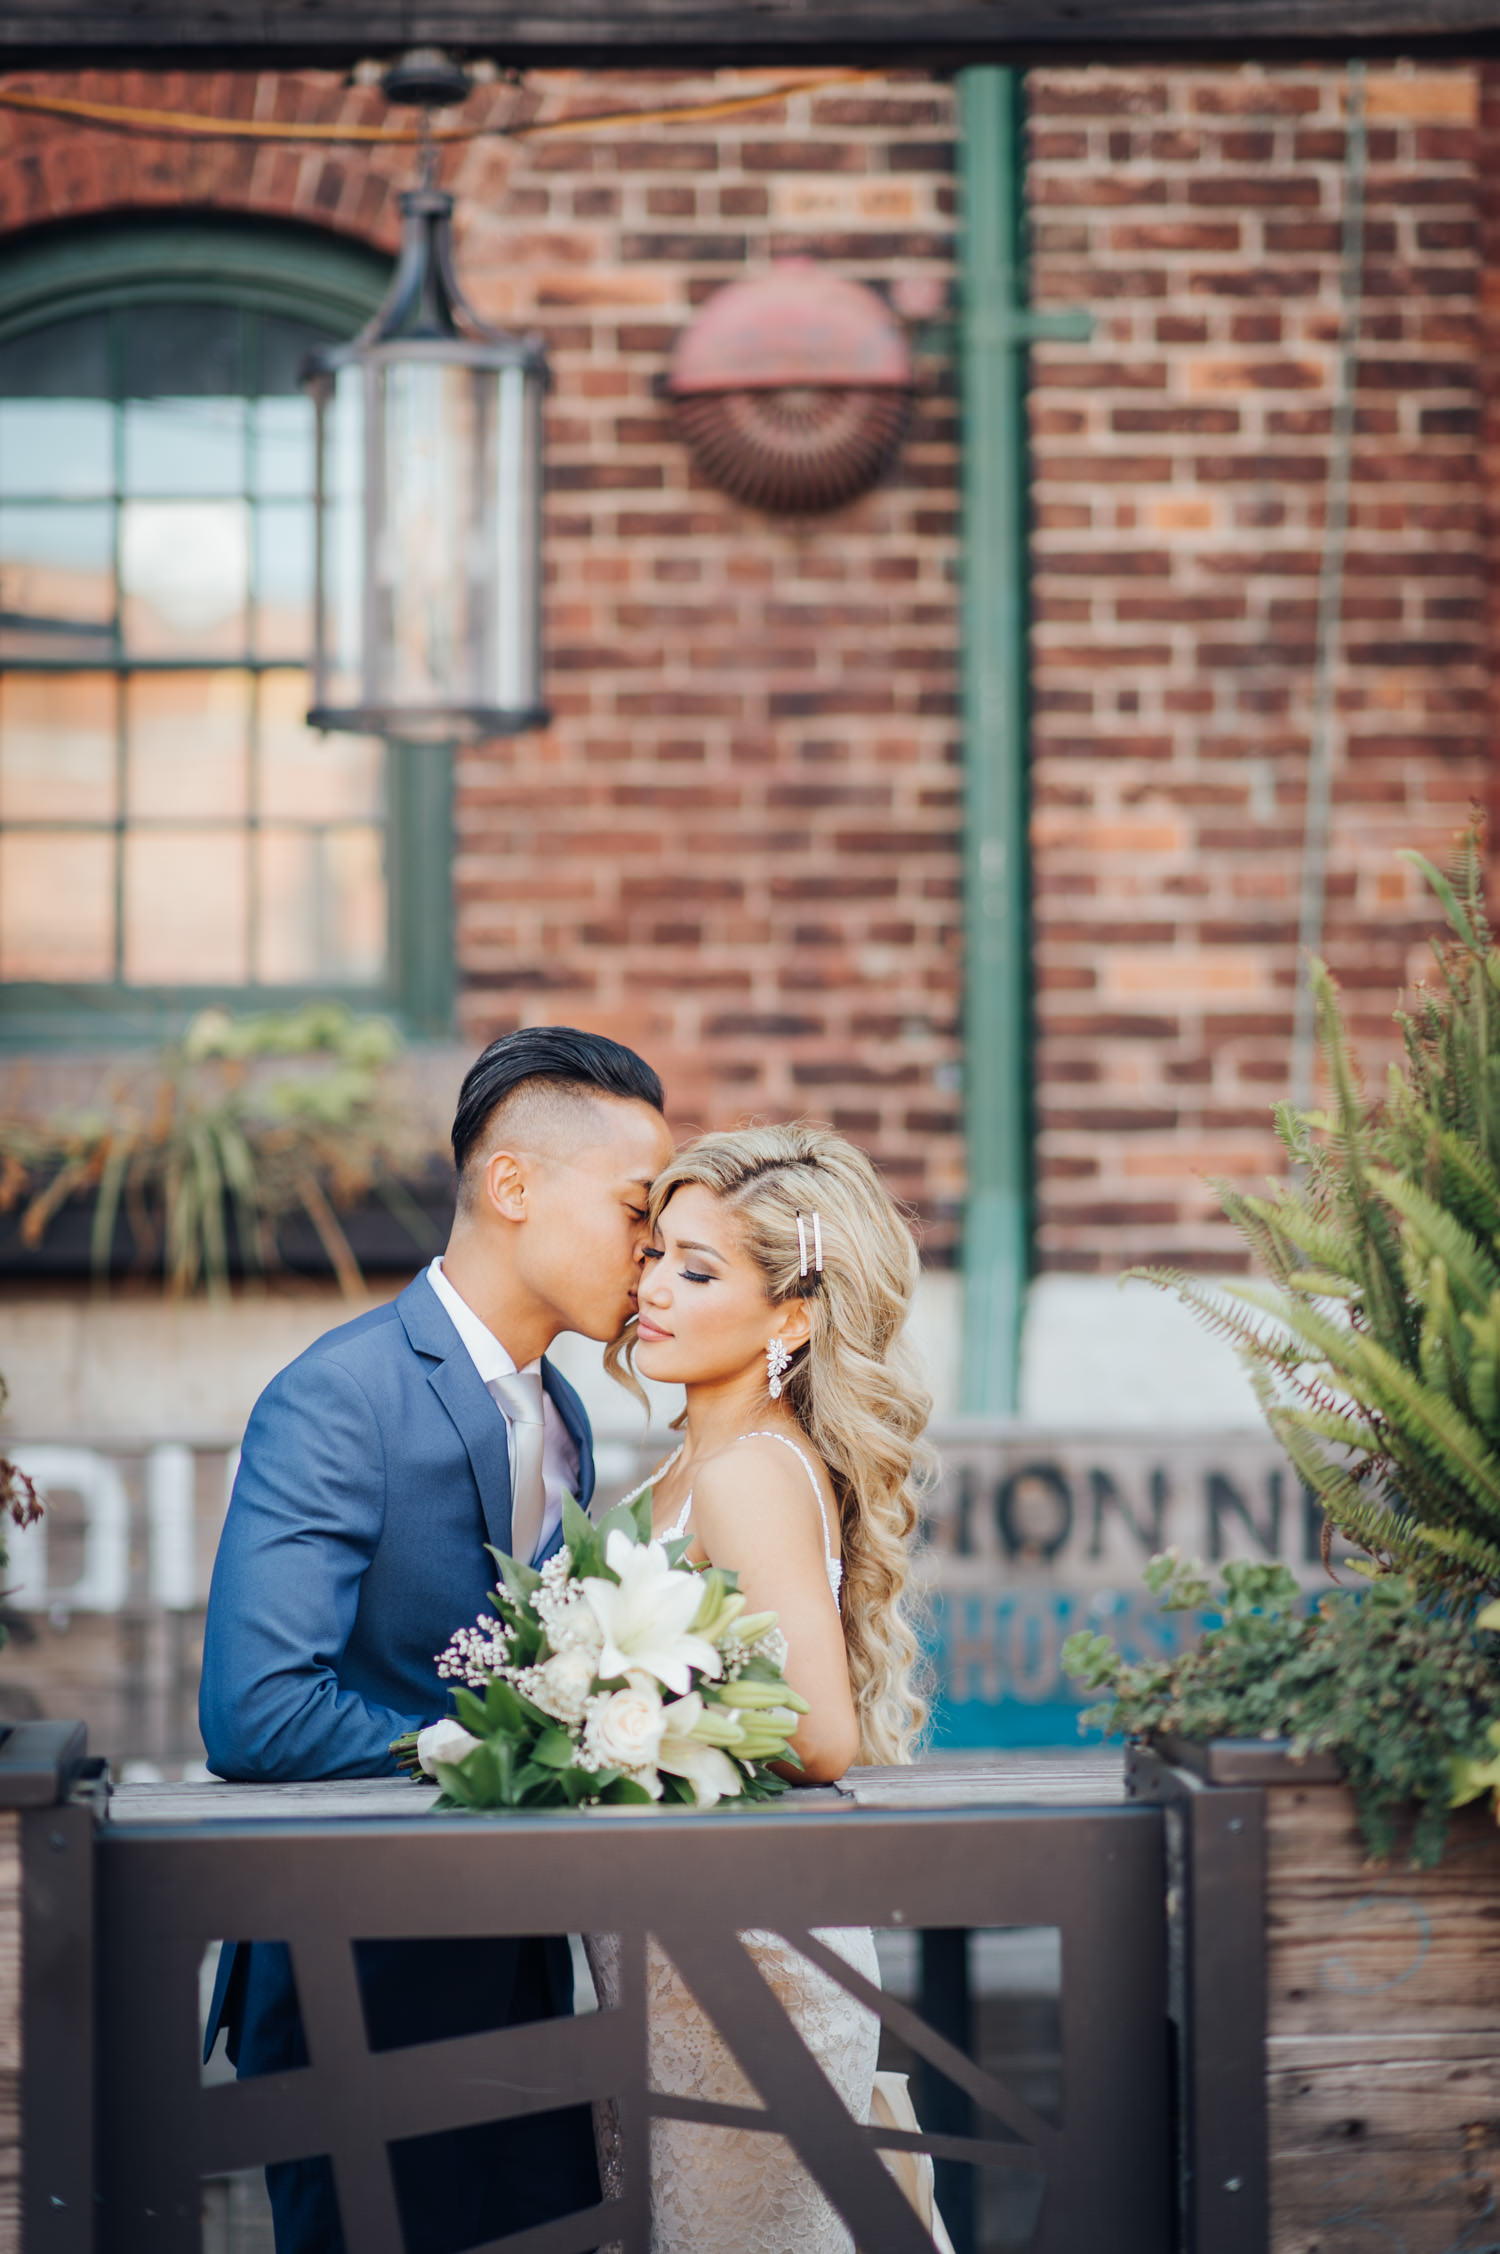 Portrait of Bride and Groom at the Toronto Distillery District Wedding